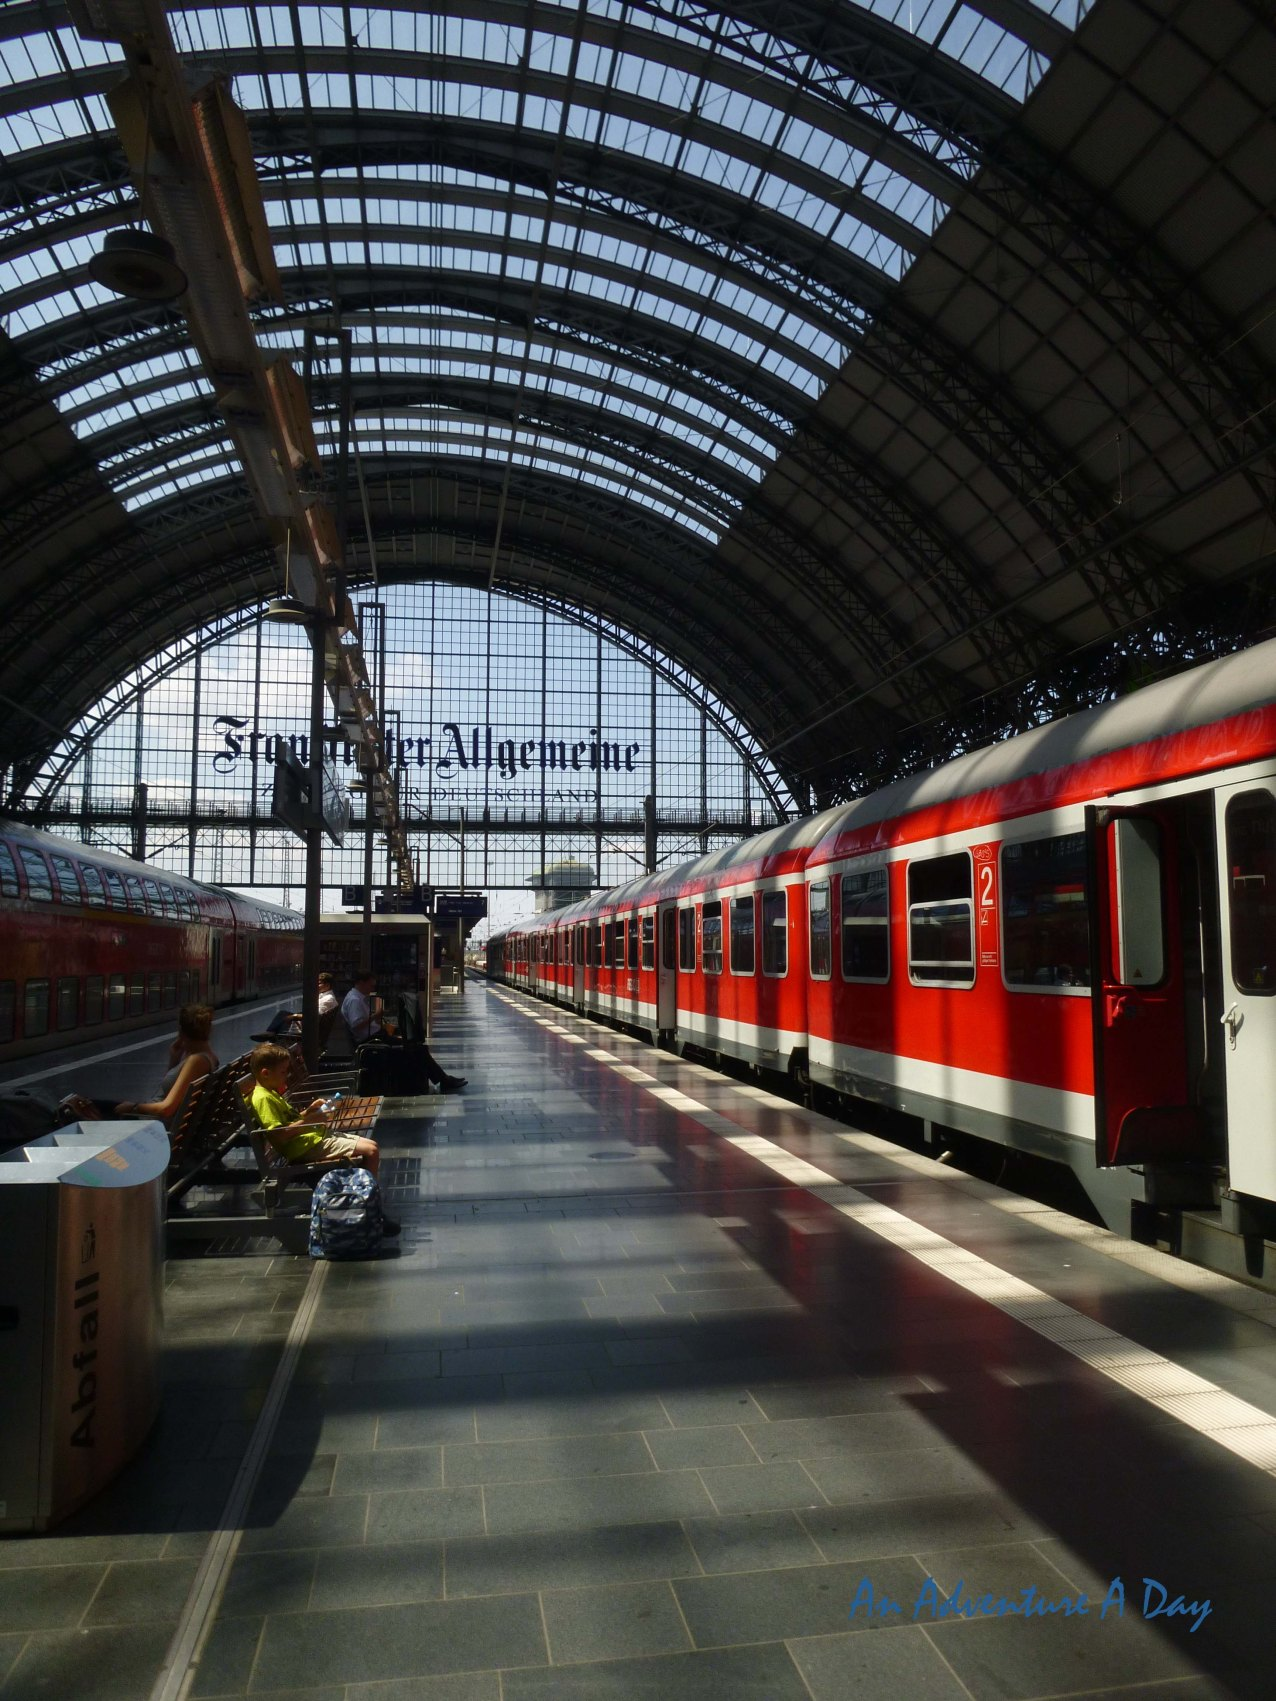 The Train Station in Frankfurt, built in the late 1800's is one of Germany's busiest train stations.